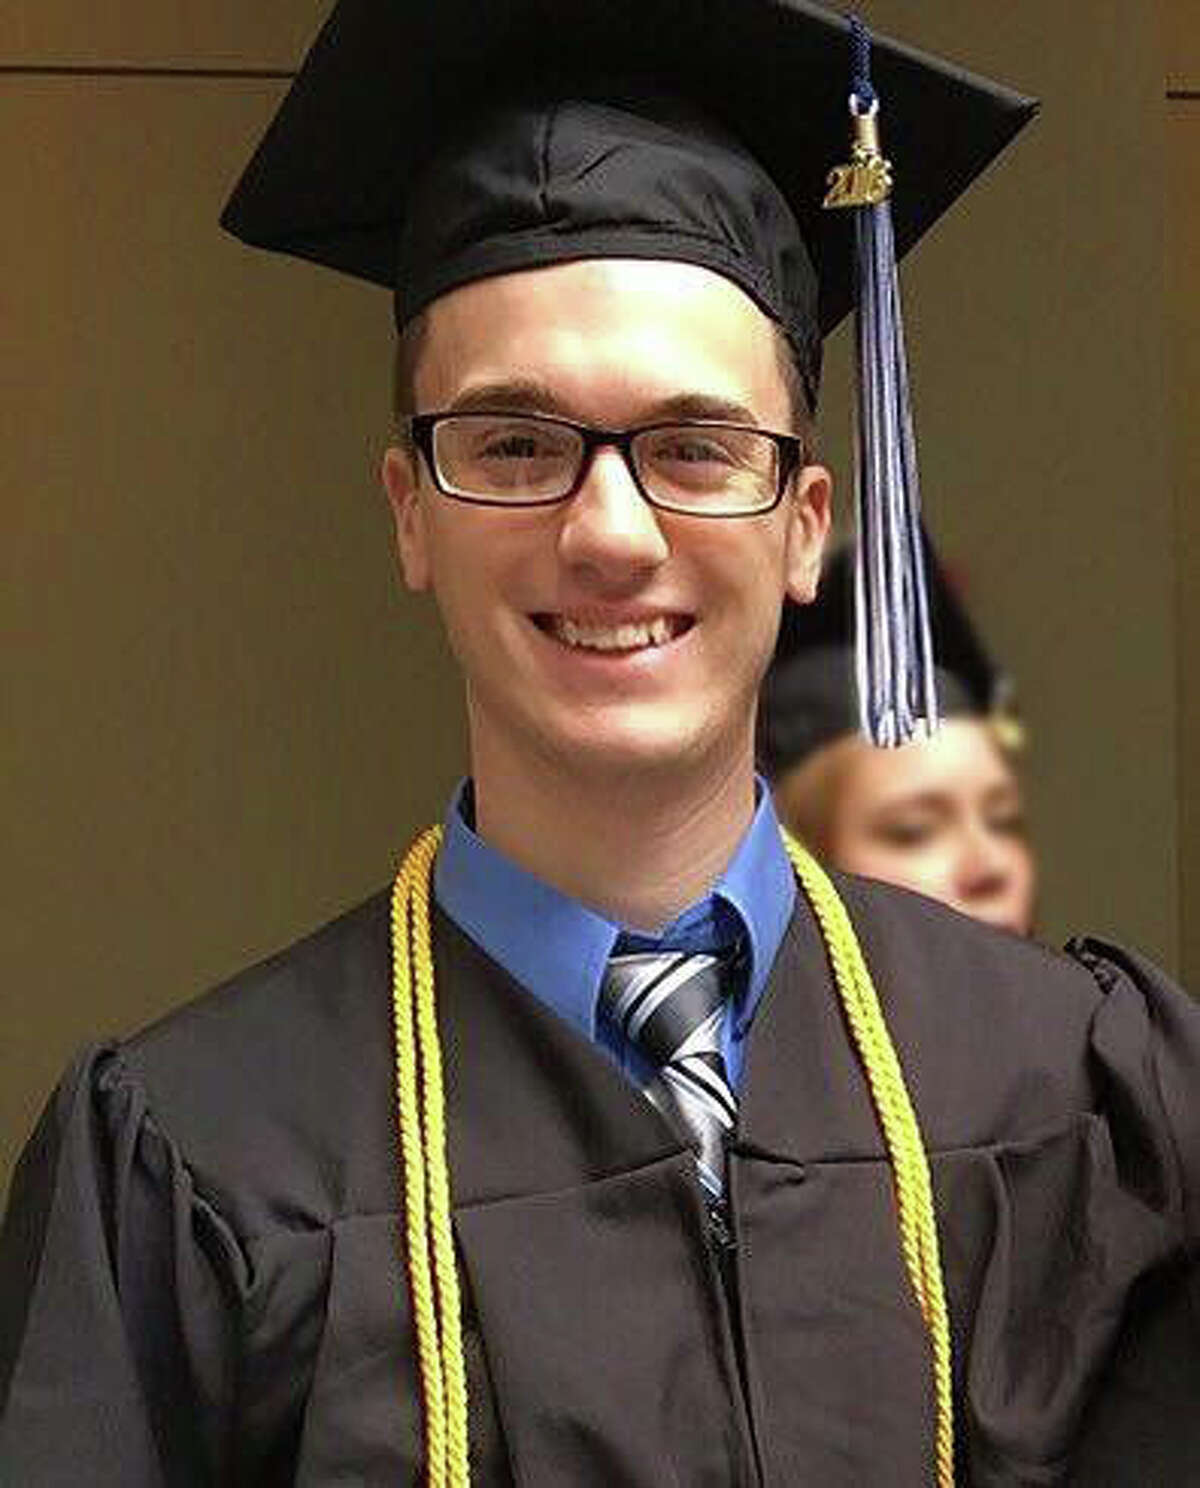 Michael Vita of New Milford has graduated from Central Connecticut State University.